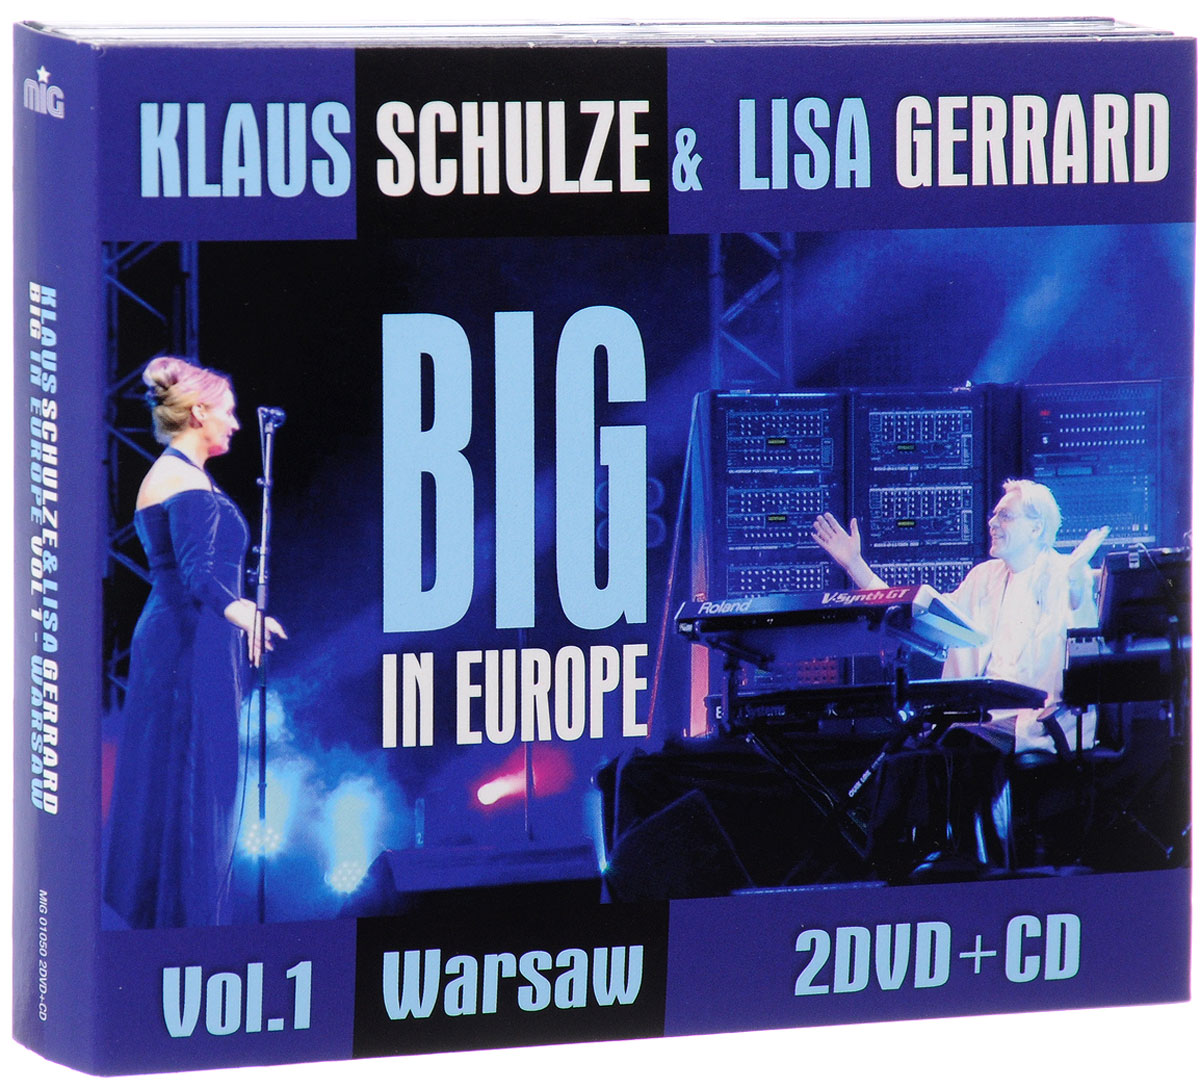 Клаус Шульце,Лайза Джеррард Klaus Schulze & Lisa Gerrard. Big In Europe. Vol. 1. Warsaw (CD + 2 DVD) rod serling twilight zone radio dramas vol 1 10 cd set